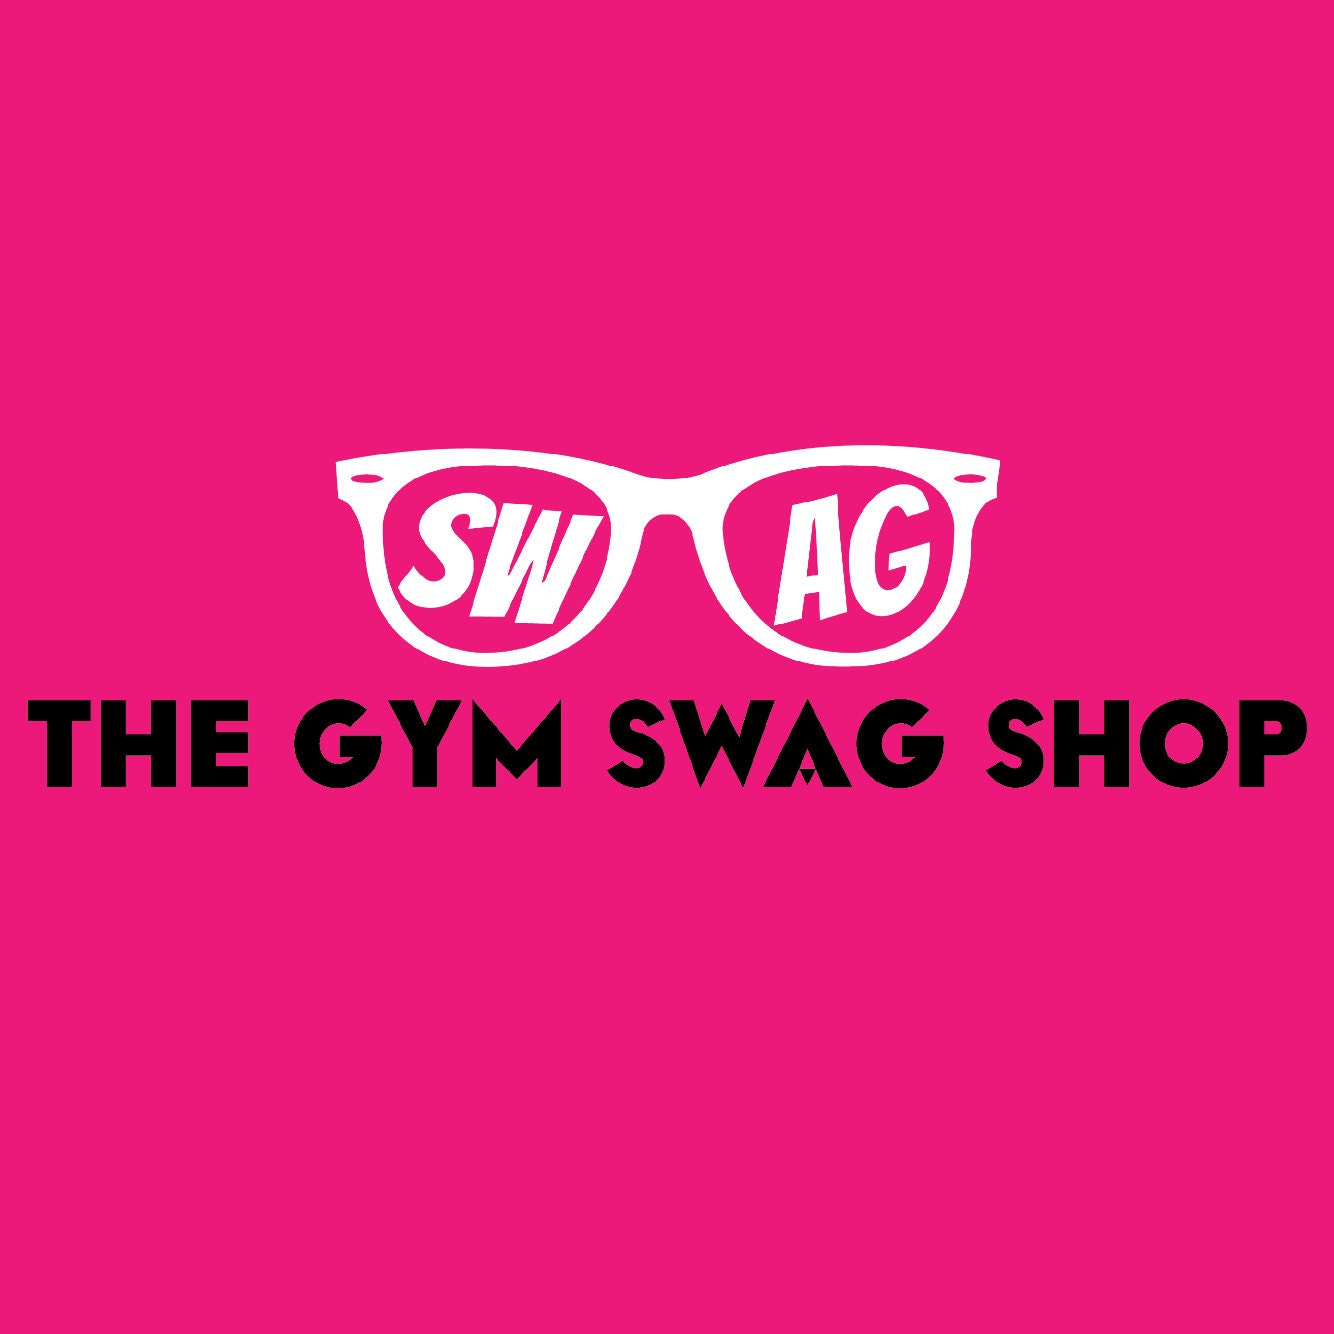 Fun & motivational exercise swag 4 fitness by TheGymSwagShop